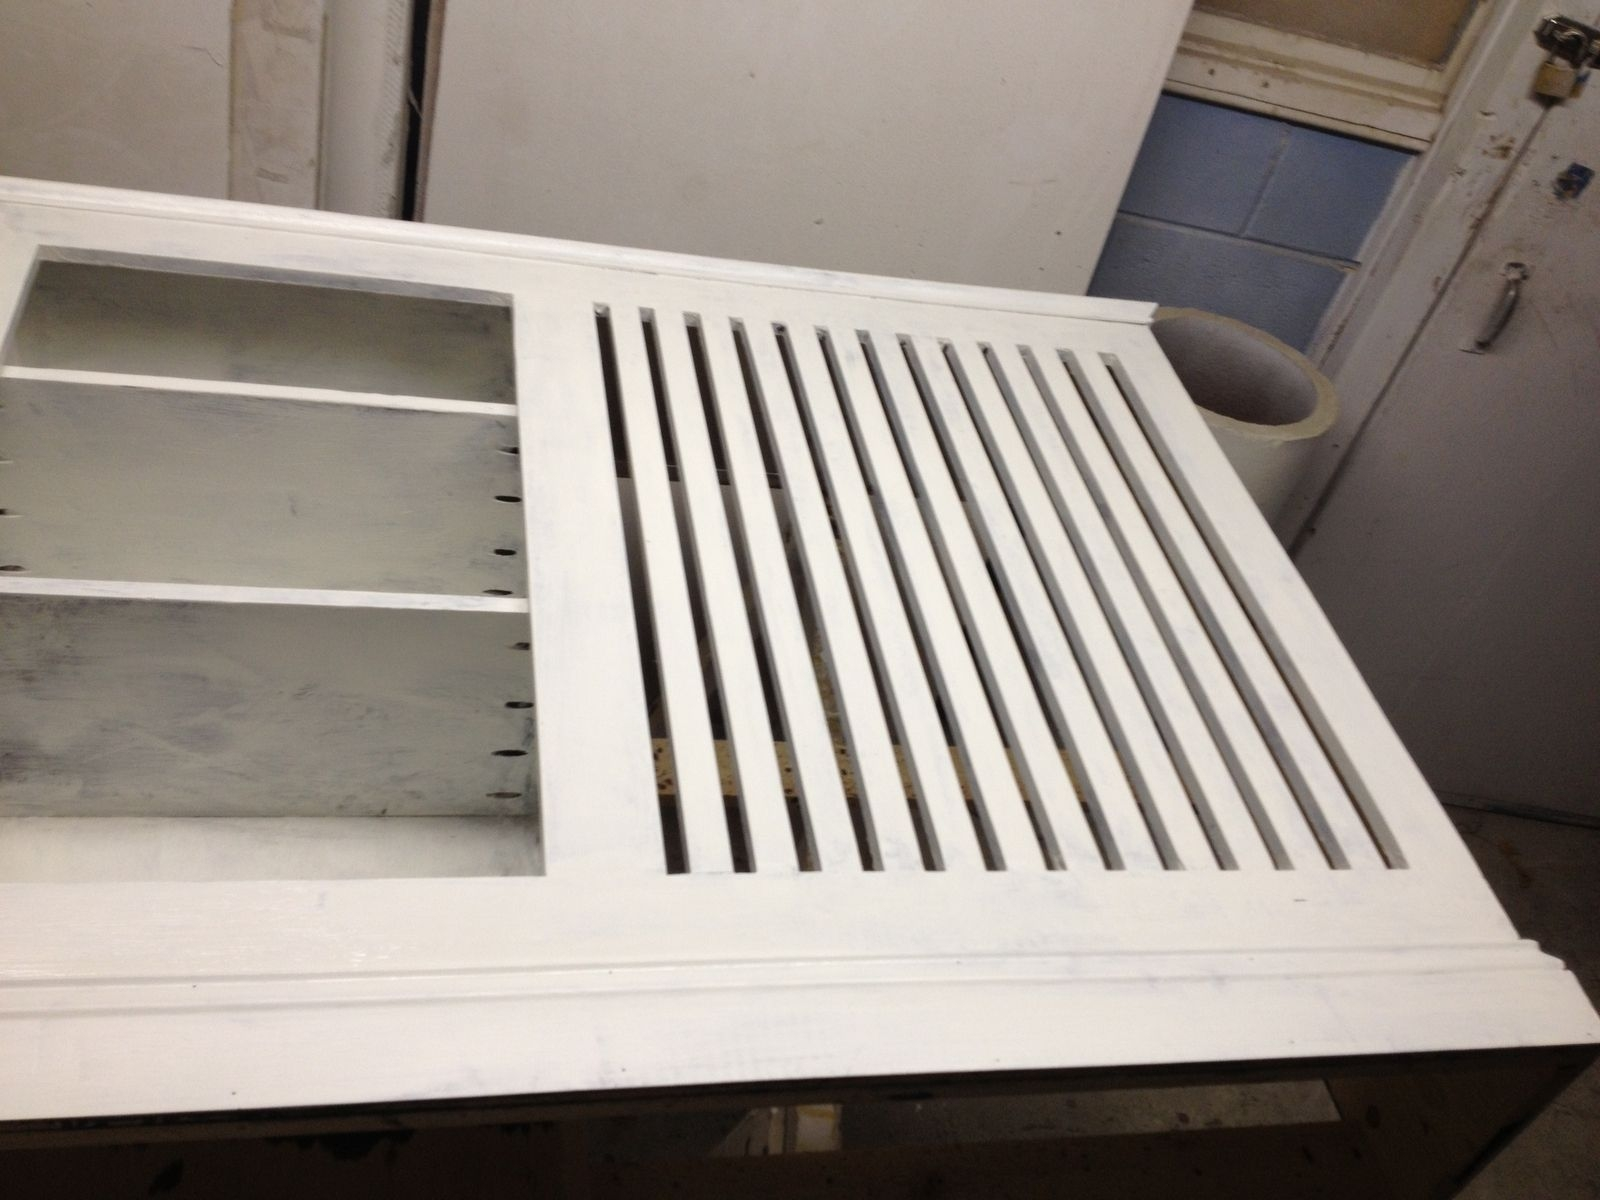 Custom Made Radiator Cover With Attached Bookshelf Pertaining To Radiator Cover Bookshelf (#8 of 15)